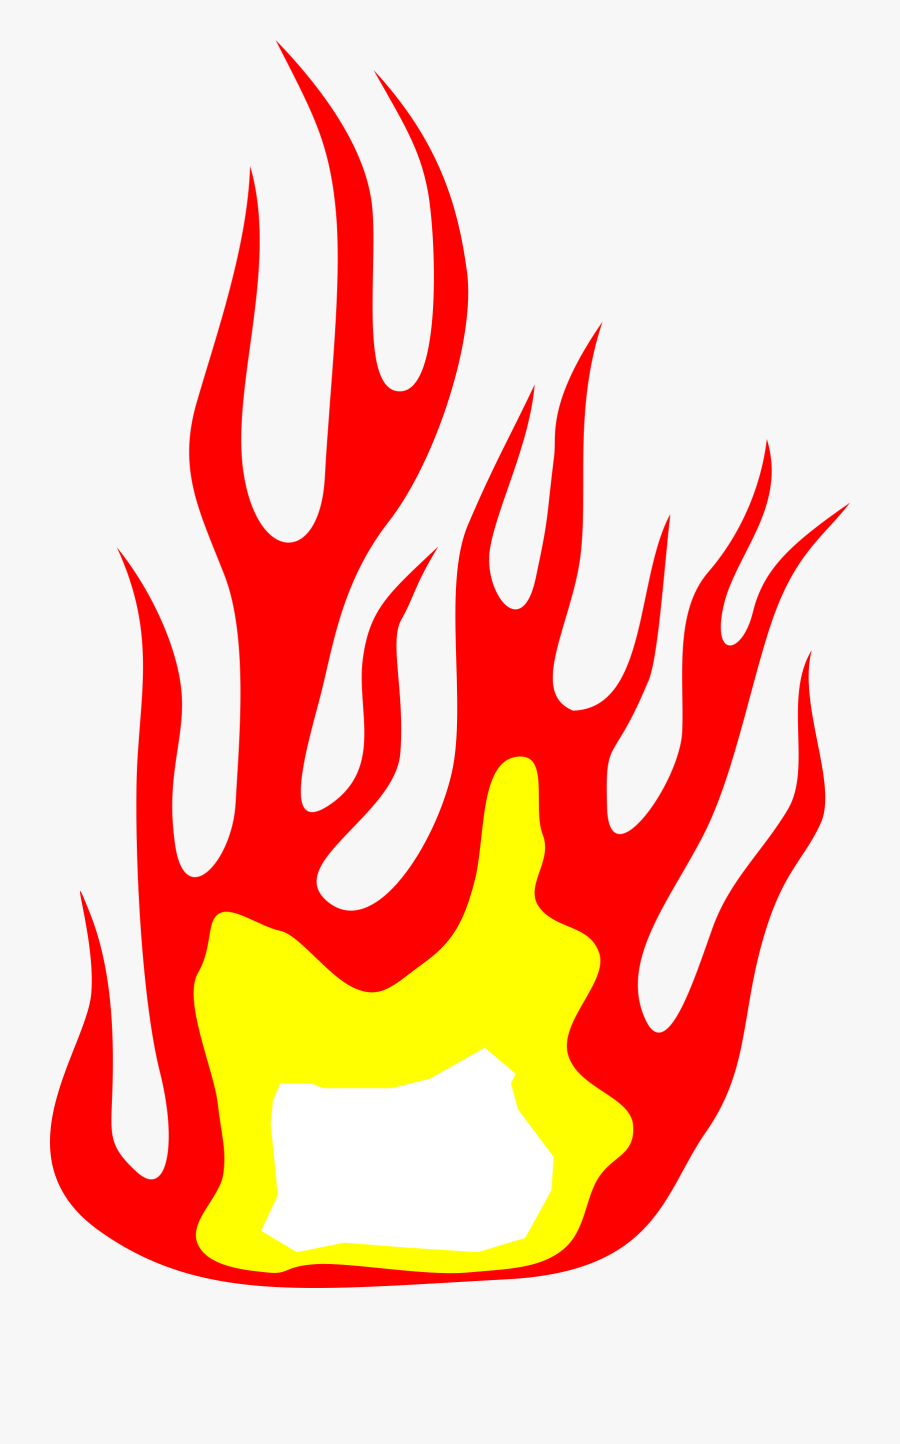 Free Fire Clipart Png Transparent - Free Flames Png Files, Transparent Clipart